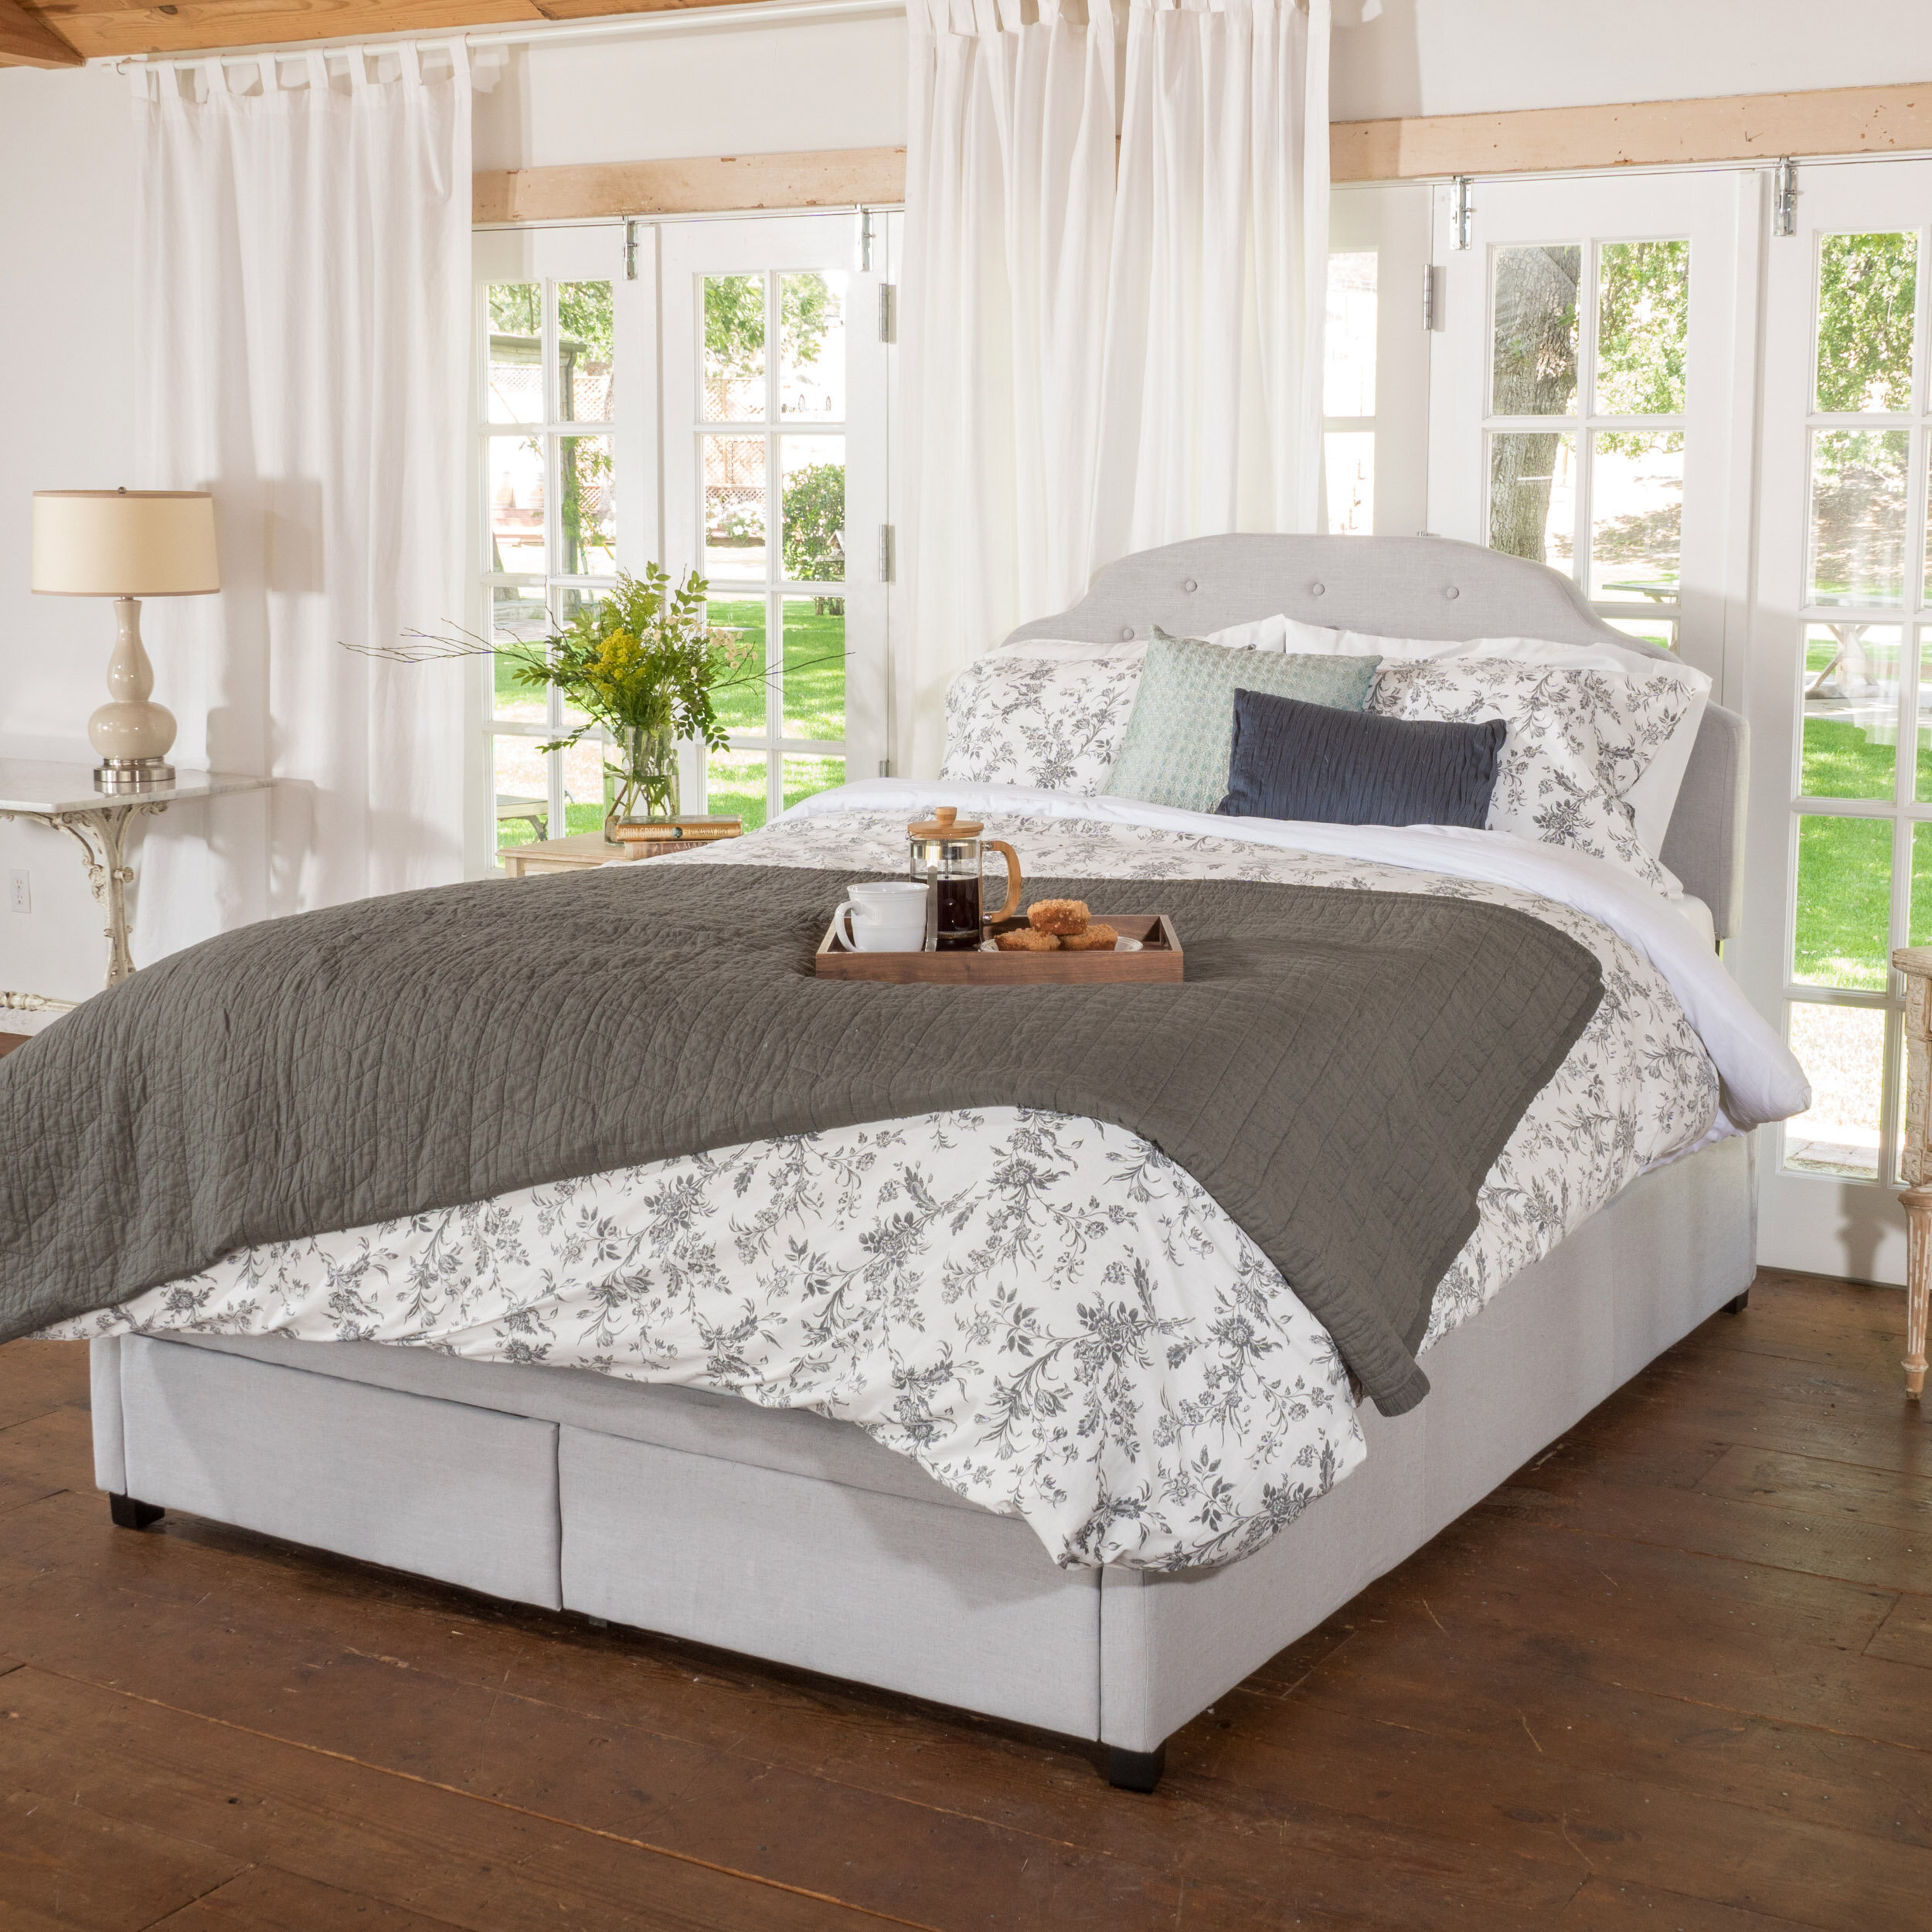 Darby Home Co Arana Upholstered Storage Panel Bed   Wayfair